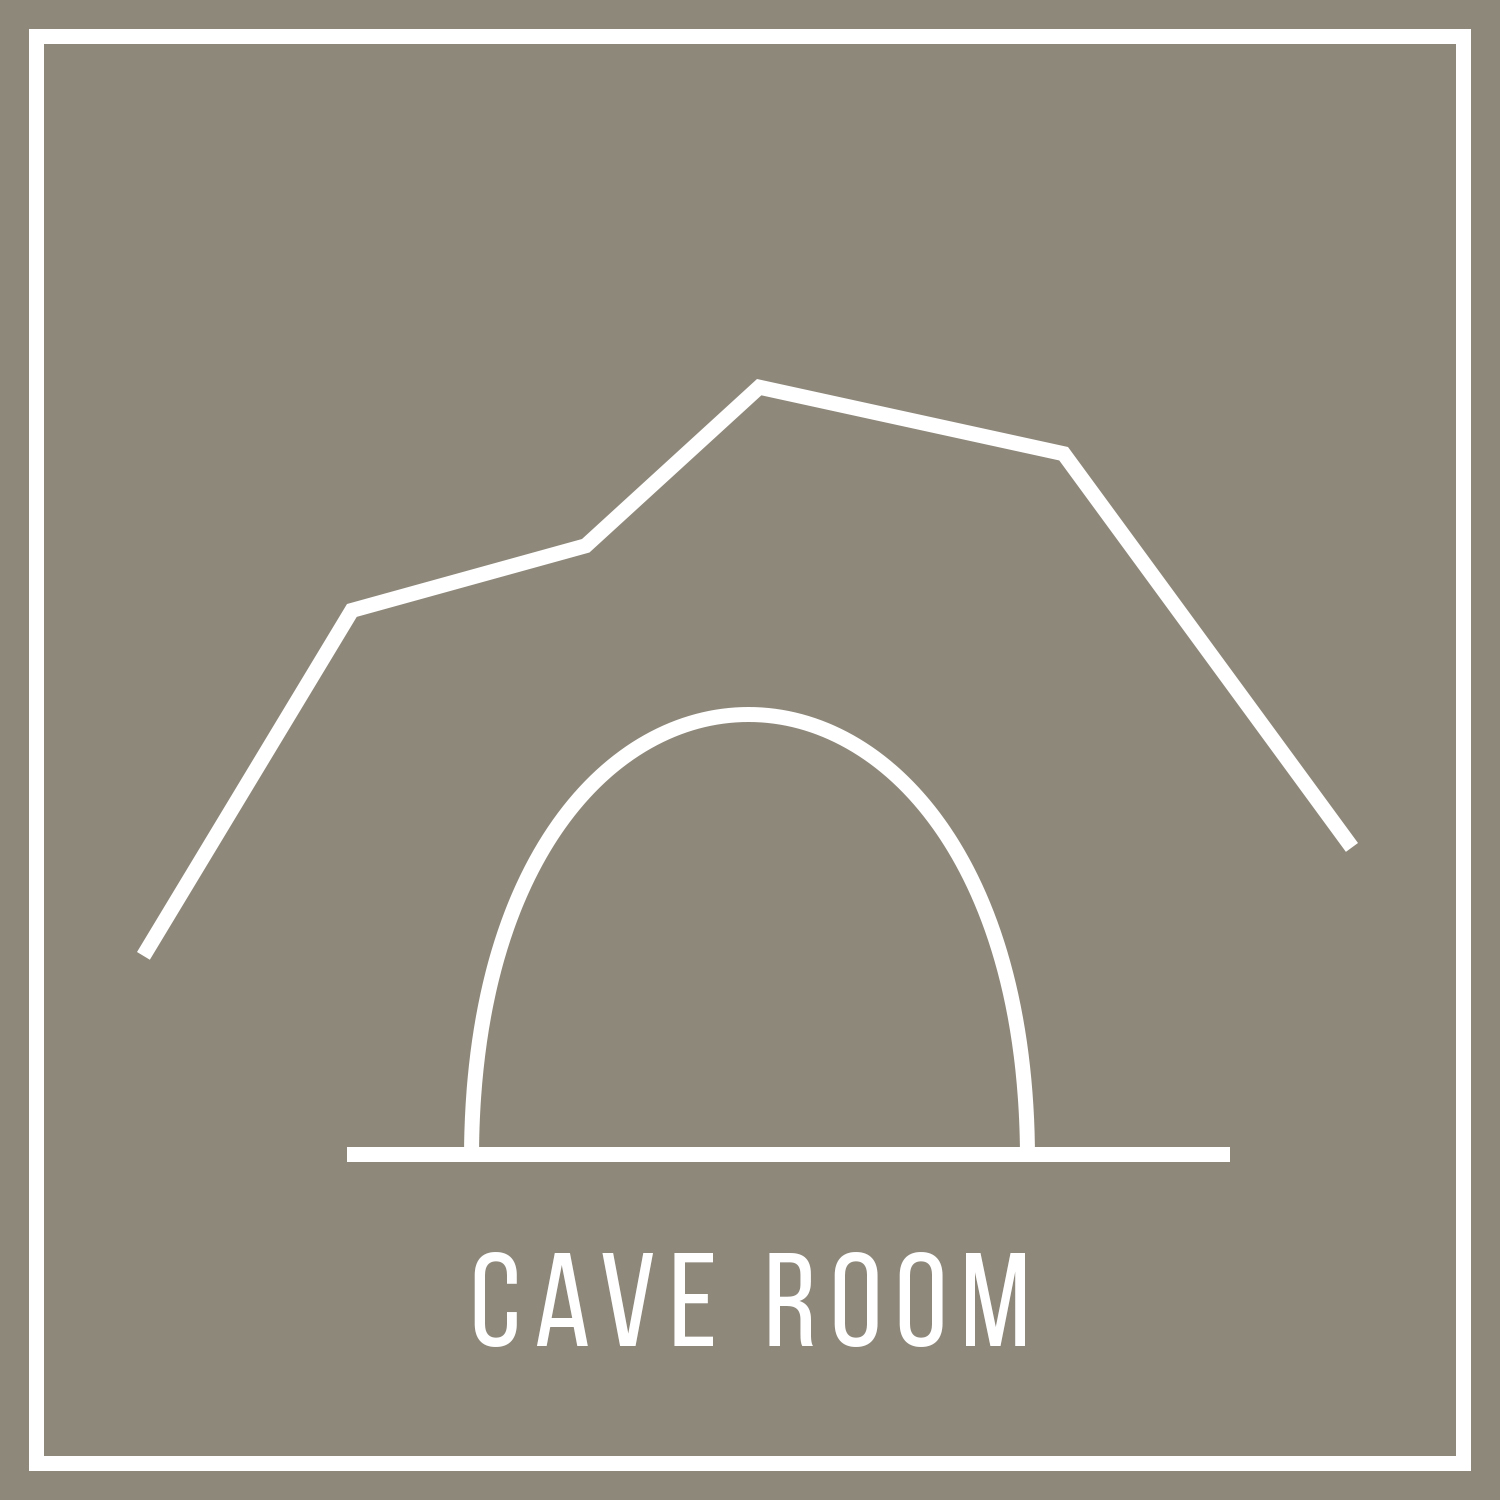 aya-kapadokya-room-features-old-kitchen-suite-square-cave-room